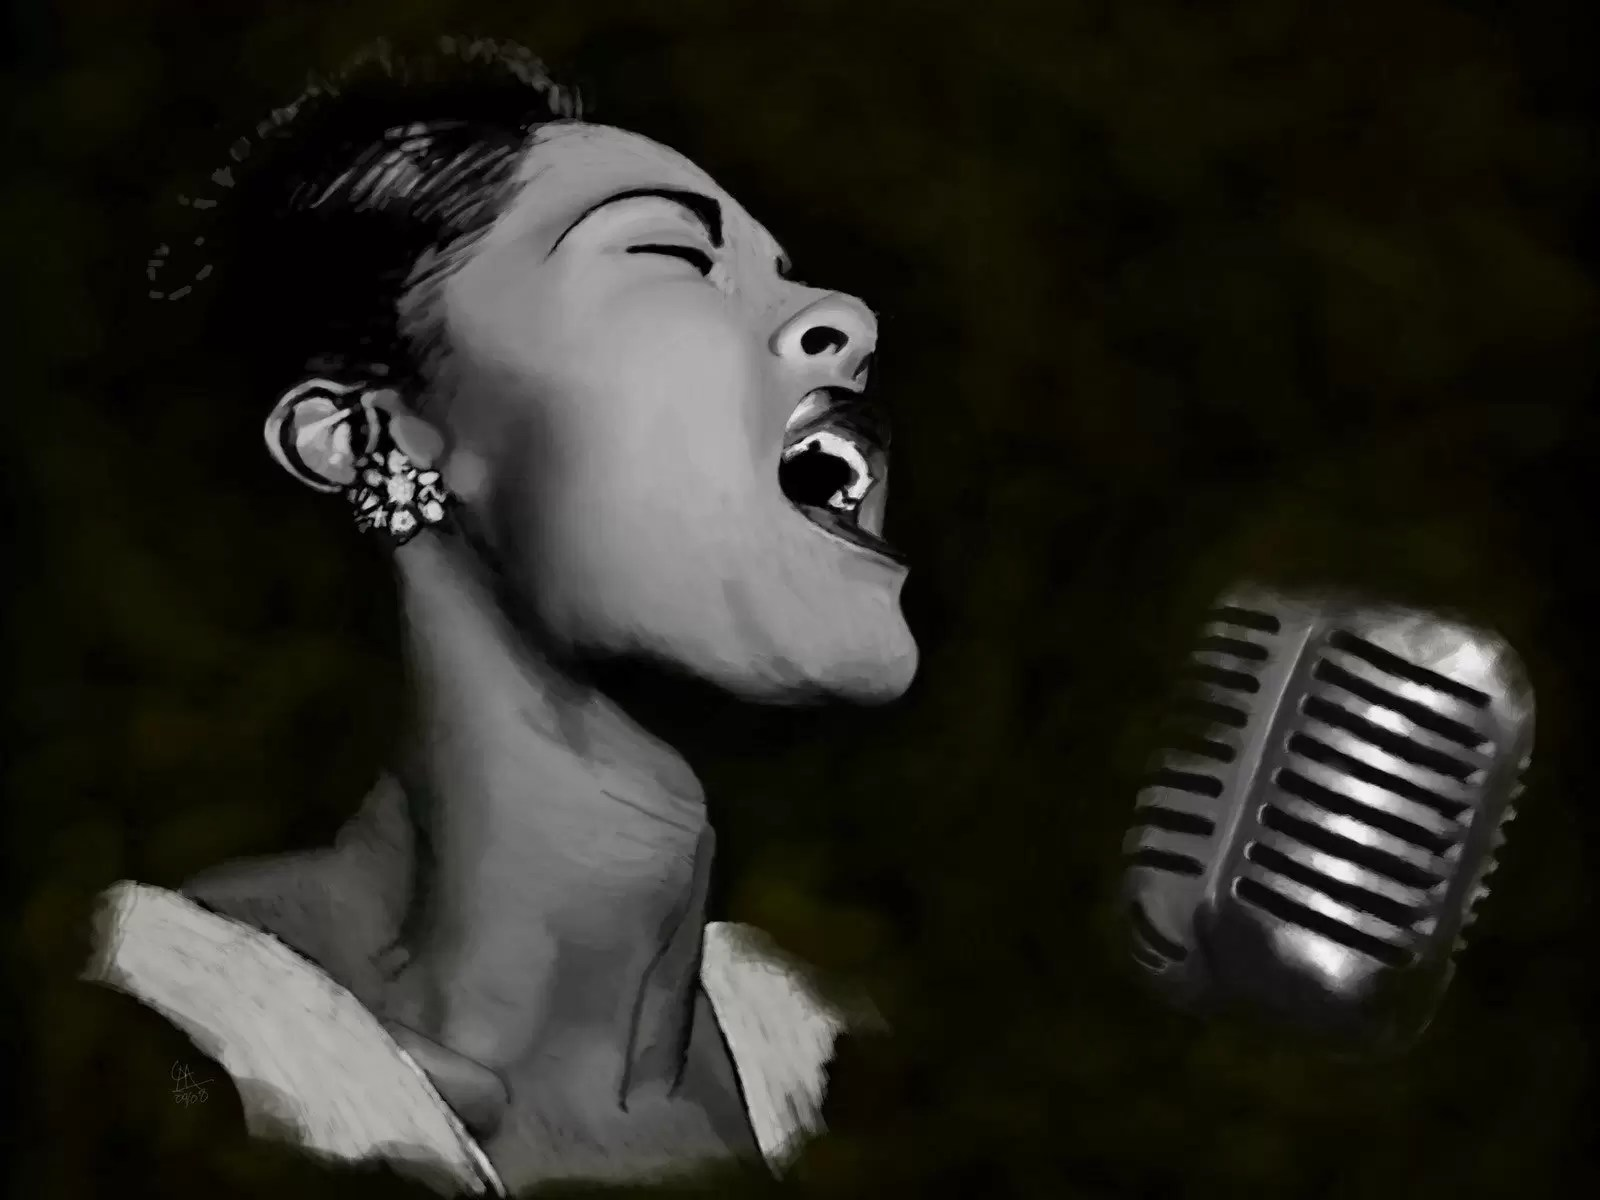 Billie Holiday image 2